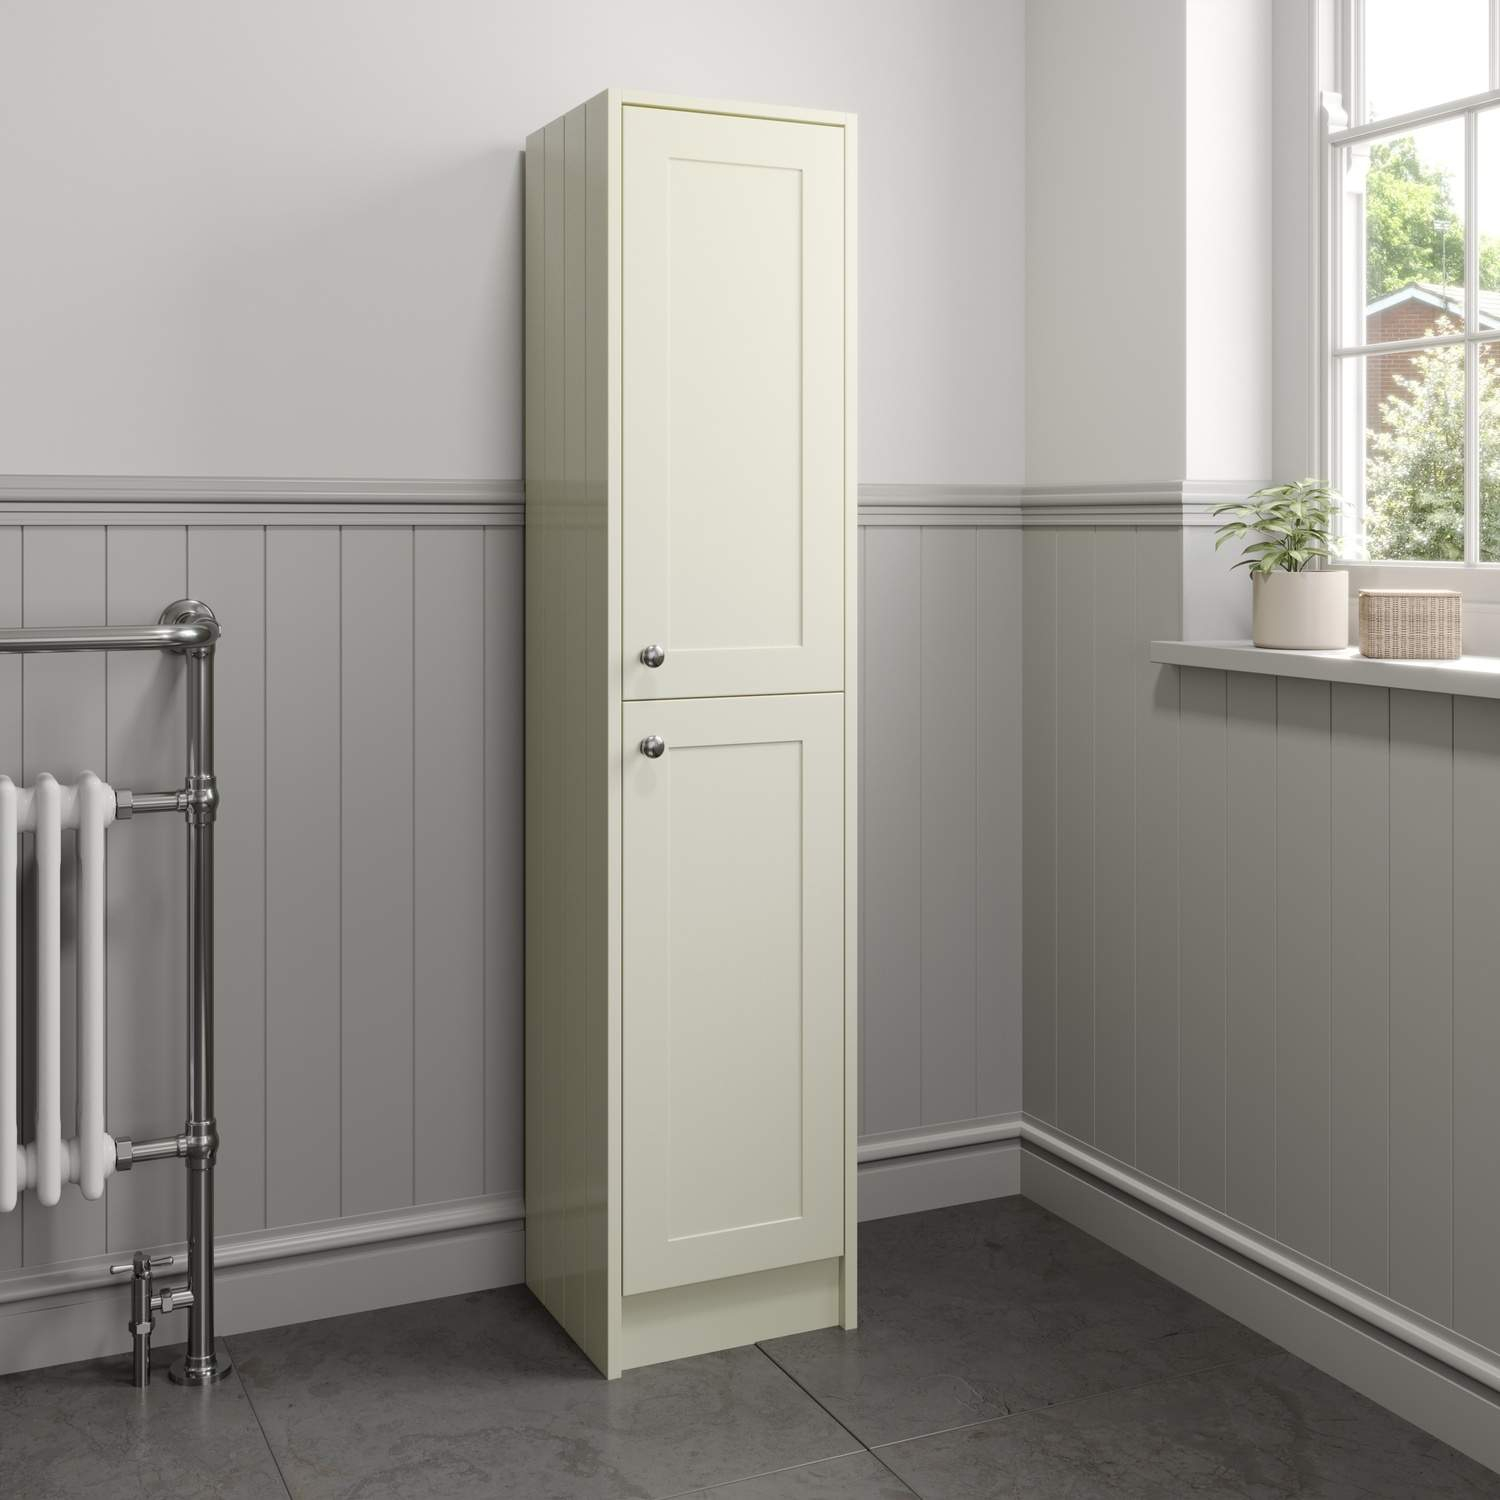 Details About Traditional 1600mm Tall Ivory Bathroom Storage Cabinet Cupboard Floorstanding inside sizing 1500 X 1500